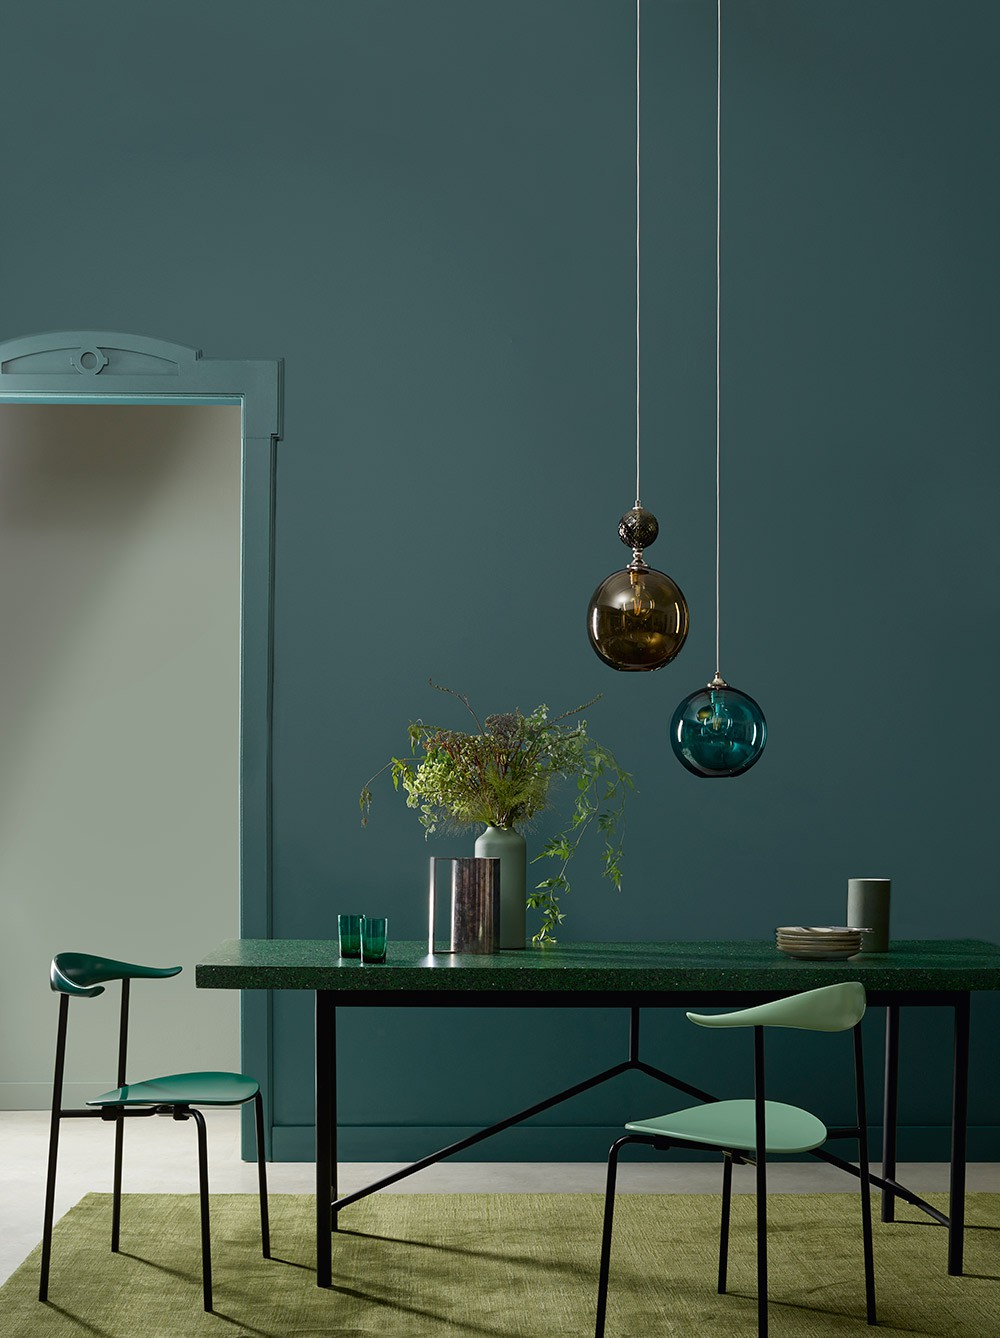 Green dining table with pendant lighting